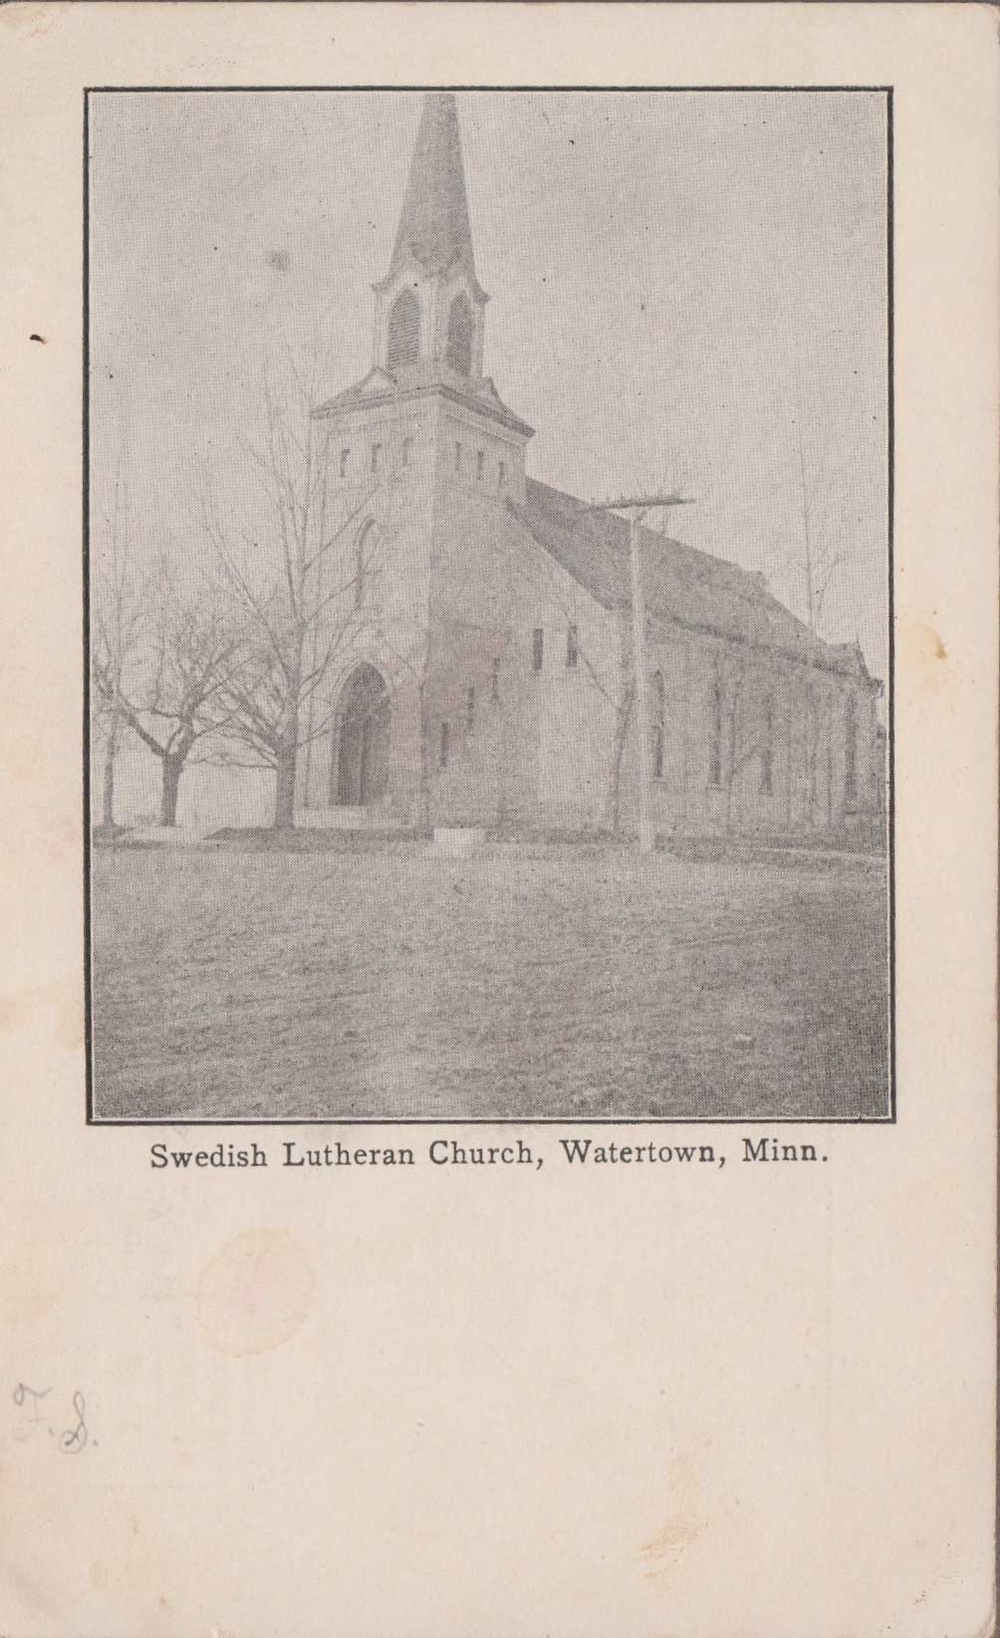 2. Swedish Lutheran Church, Watertown, MN